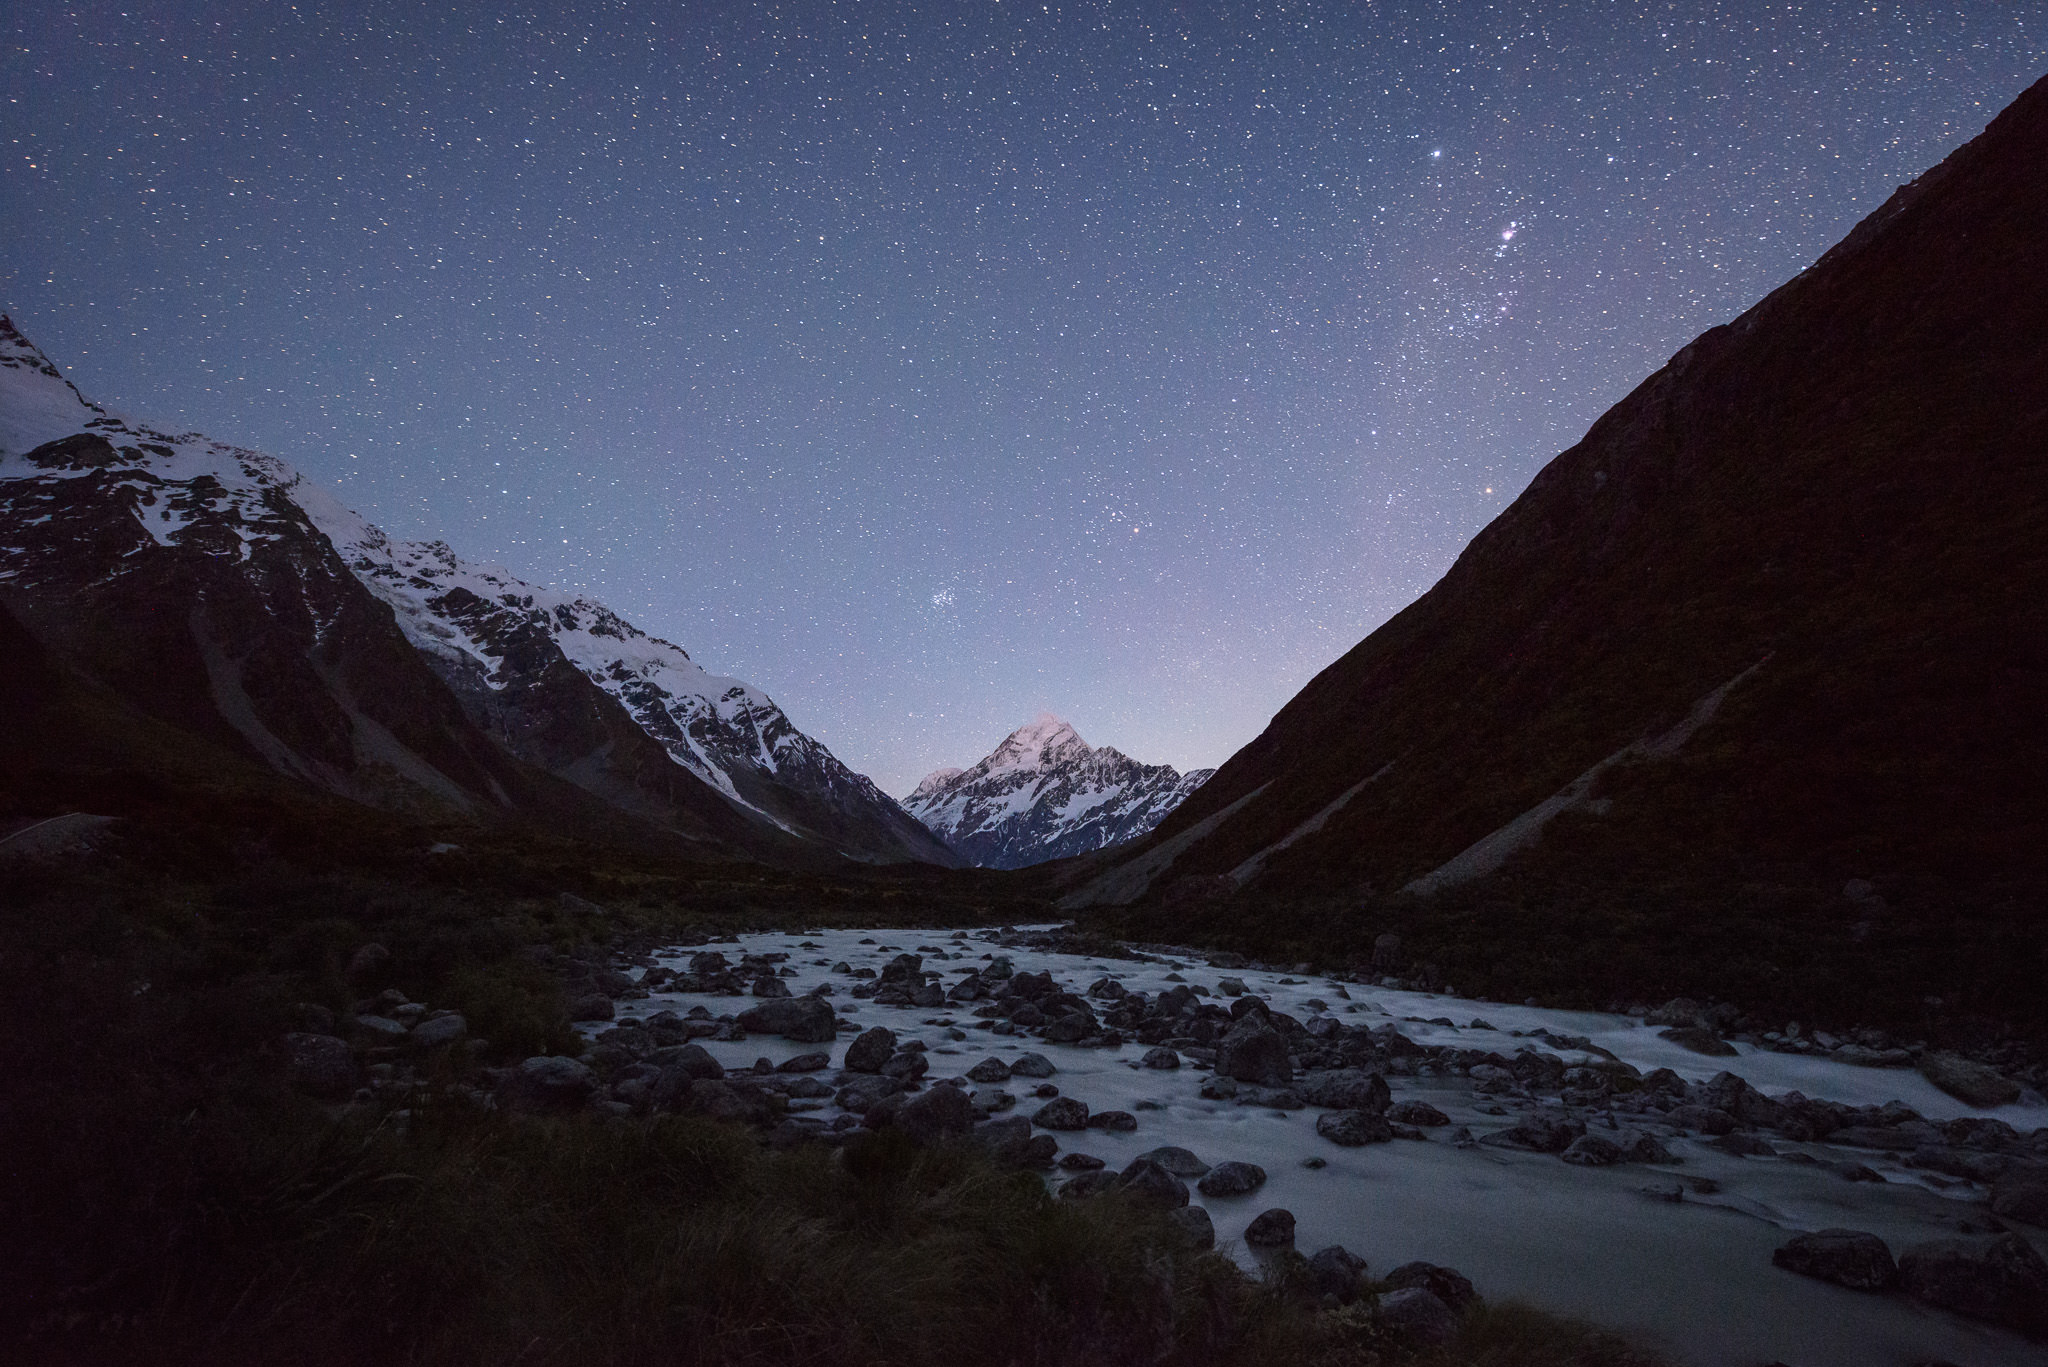 What Makes a Good Night Photography Lens?